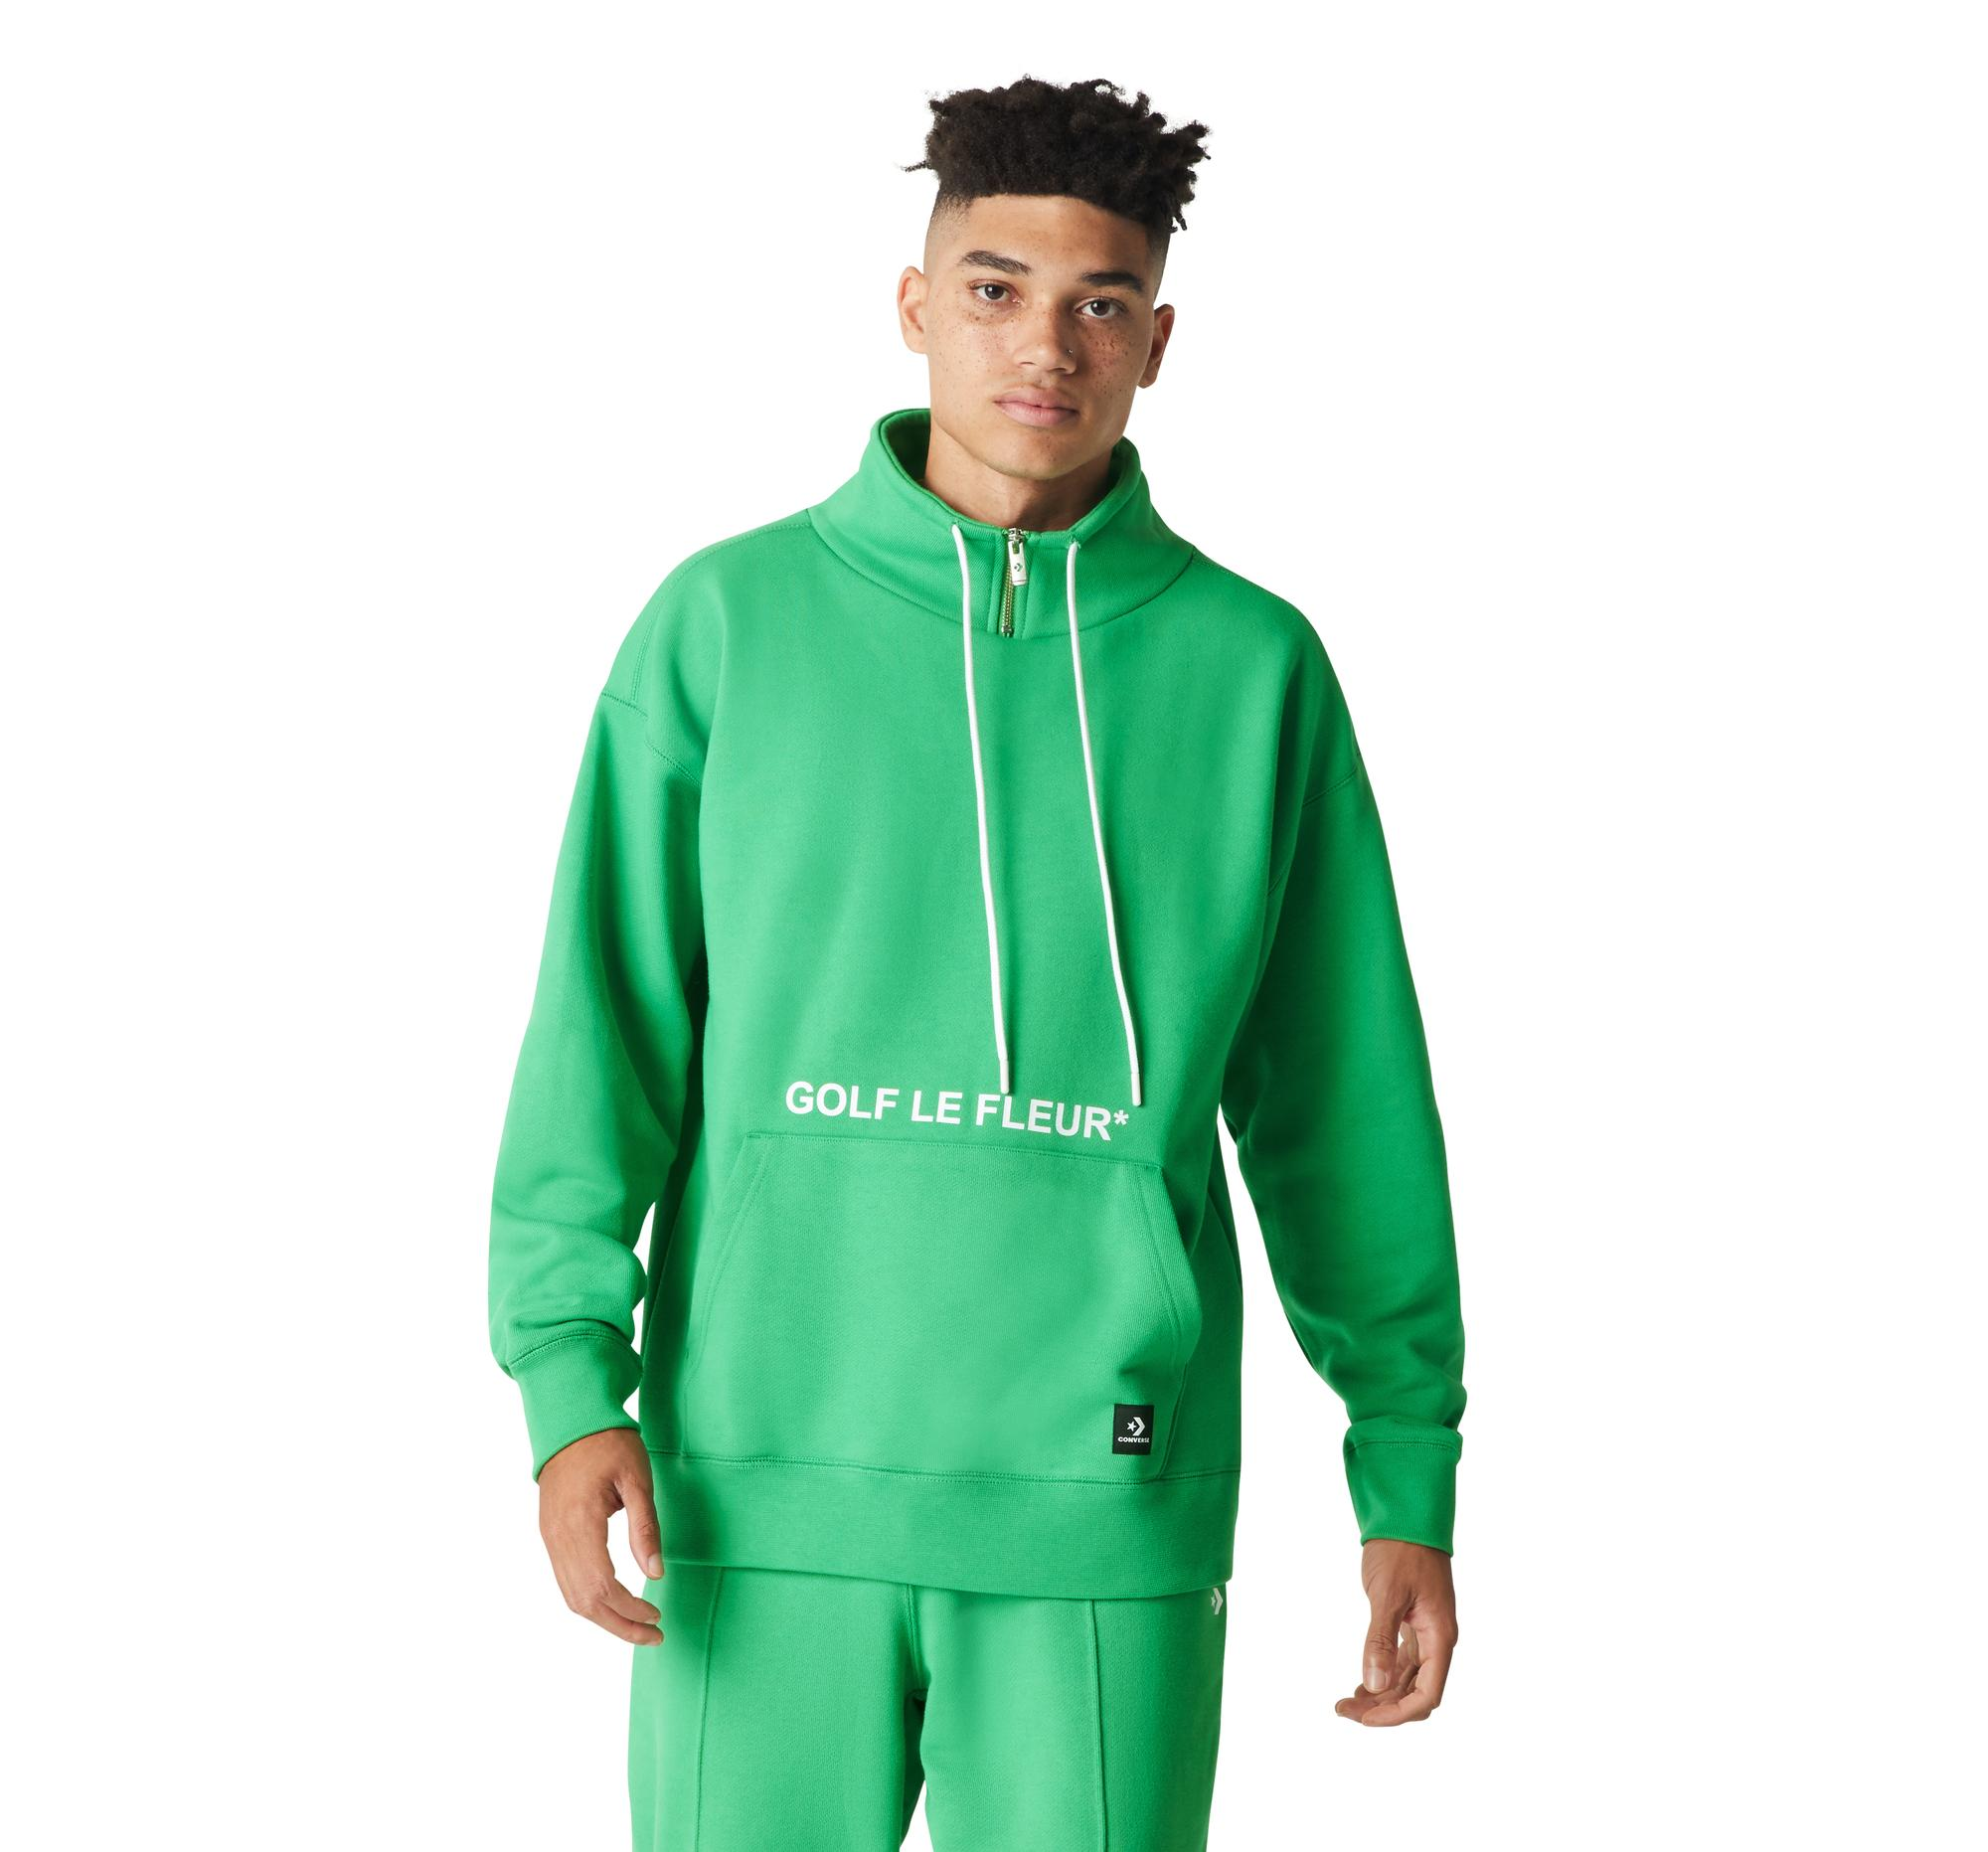 Converse X Golf Le Fleur 1 4 Zip Pullover In Green For Men Lyst